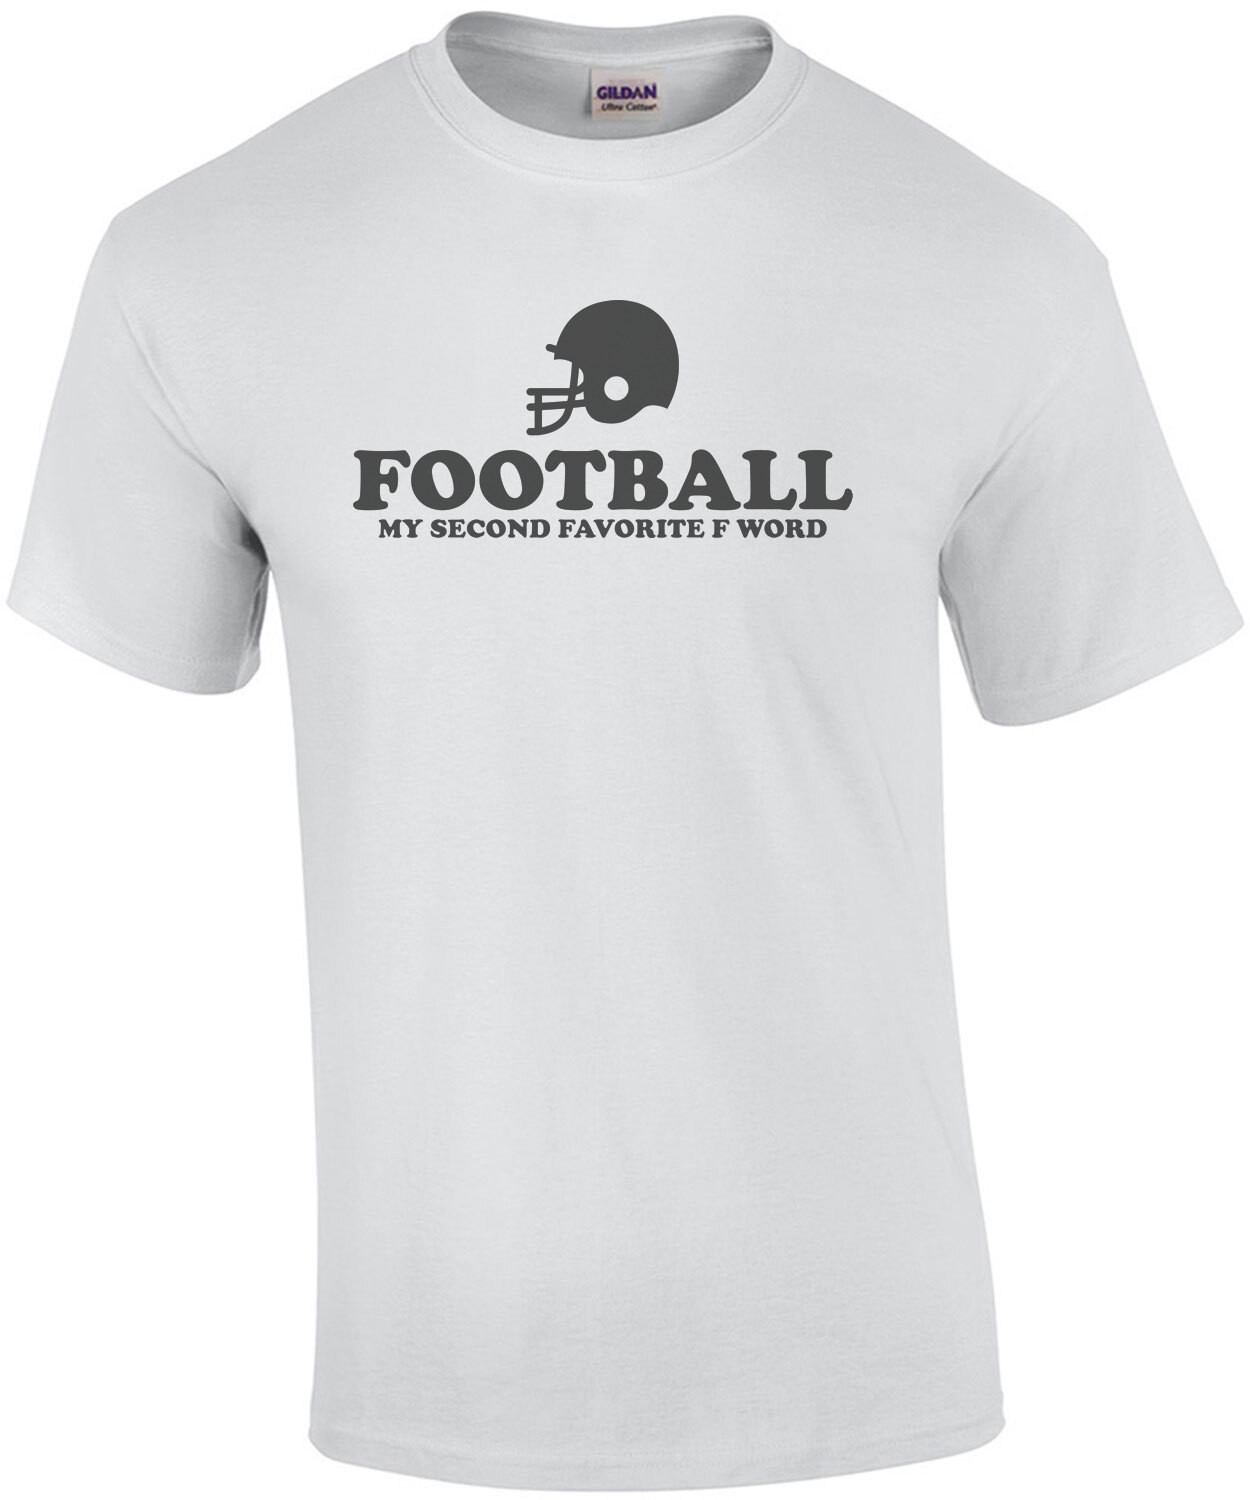 Football My Second Favorite F Word Funny Football Shirt